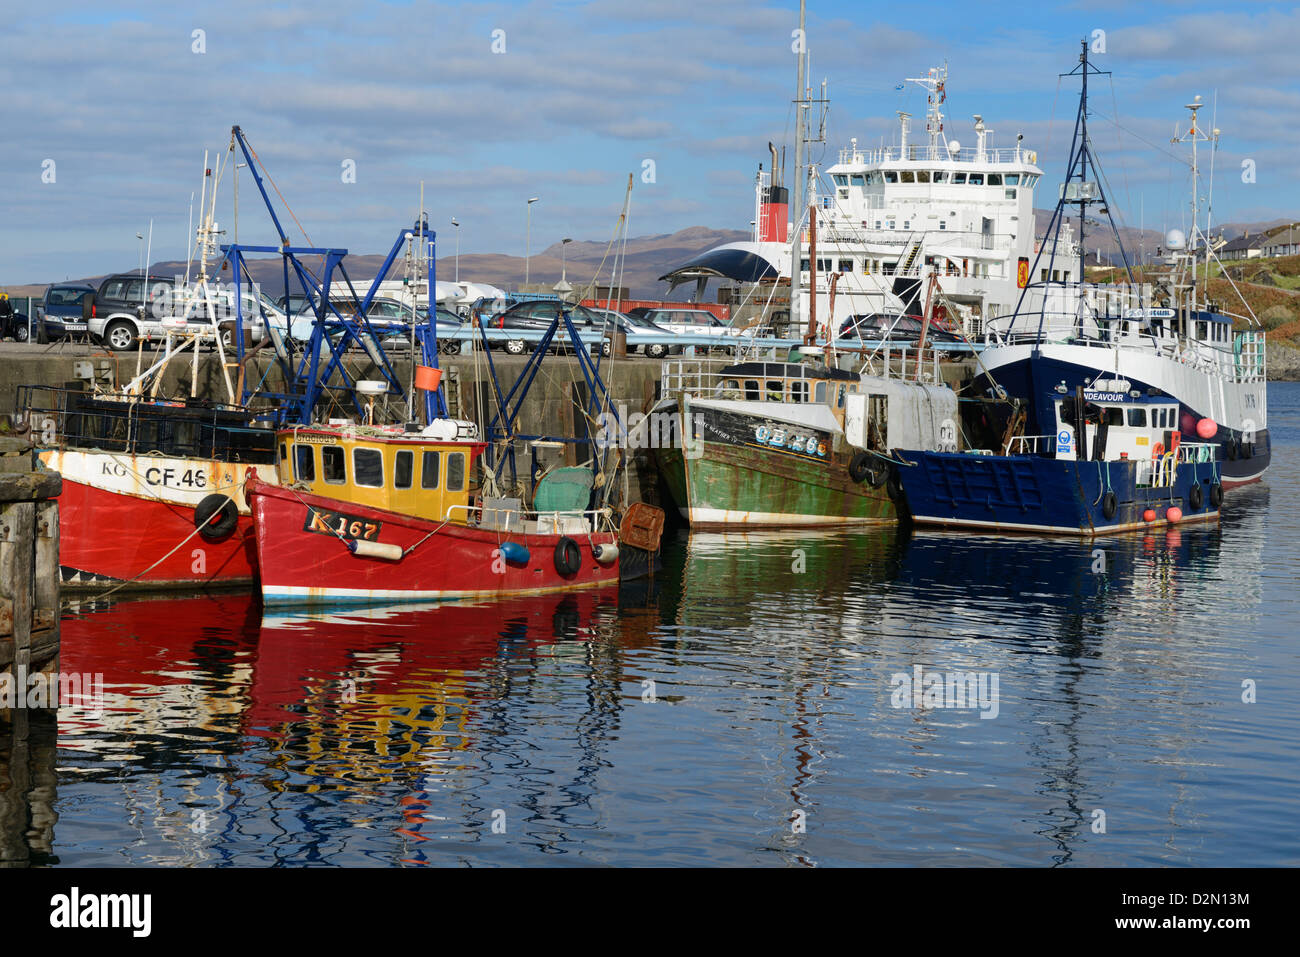 Fishing boats and Car Ferry in the harbour, Mallaig, Highlands, Scotland, United Kingdom, Europe - Stock Image